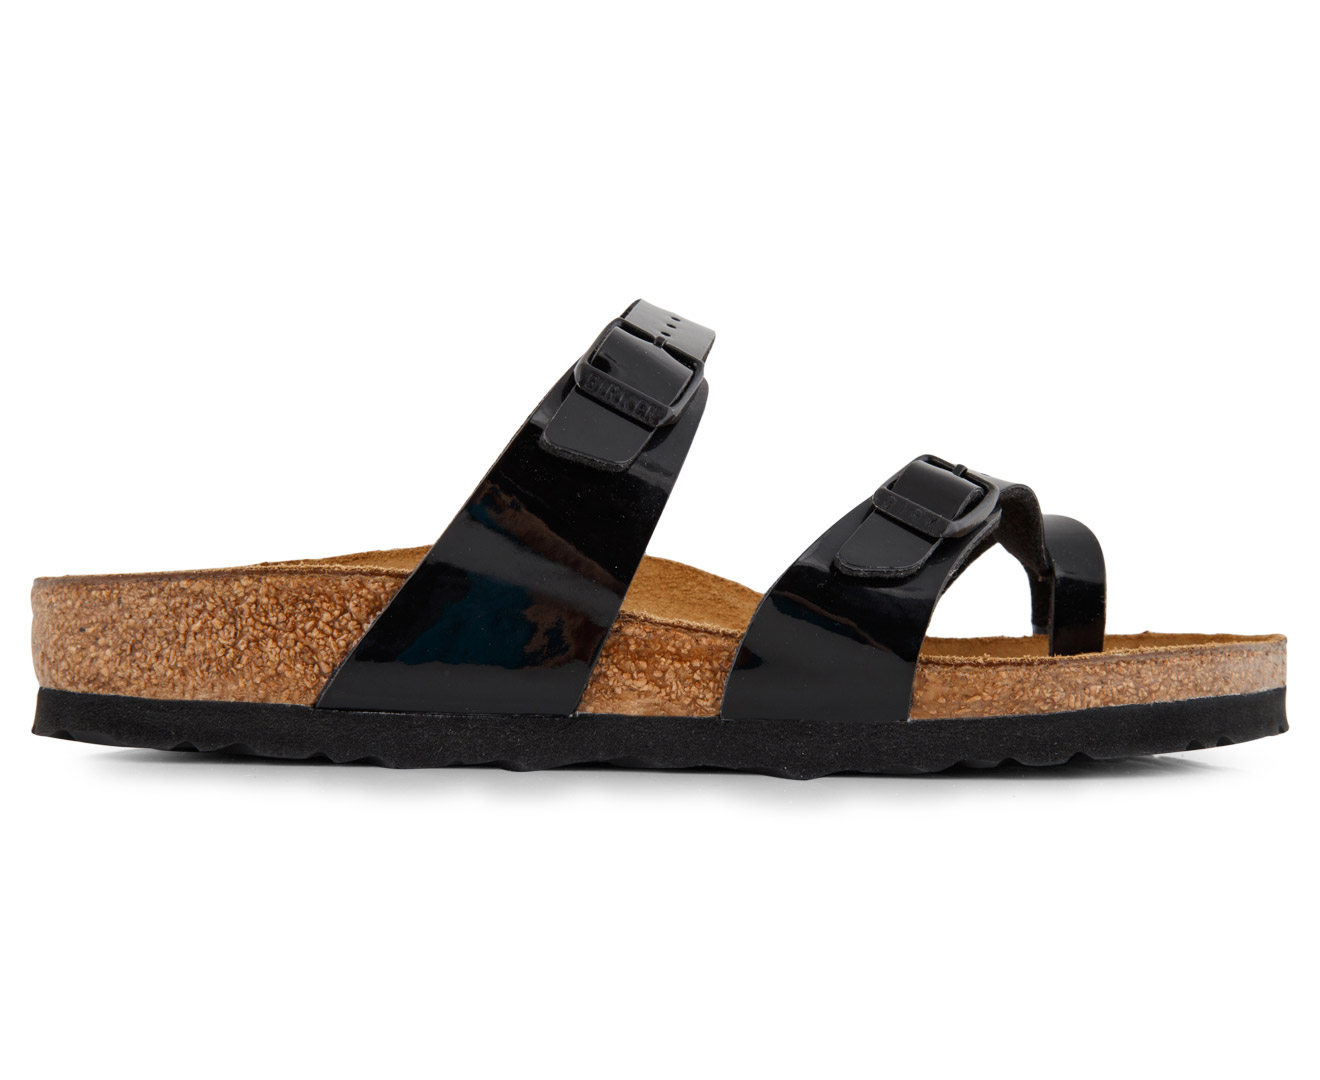 5f6b7eb79bb My Birkenstock Canada Branded Clothes Online